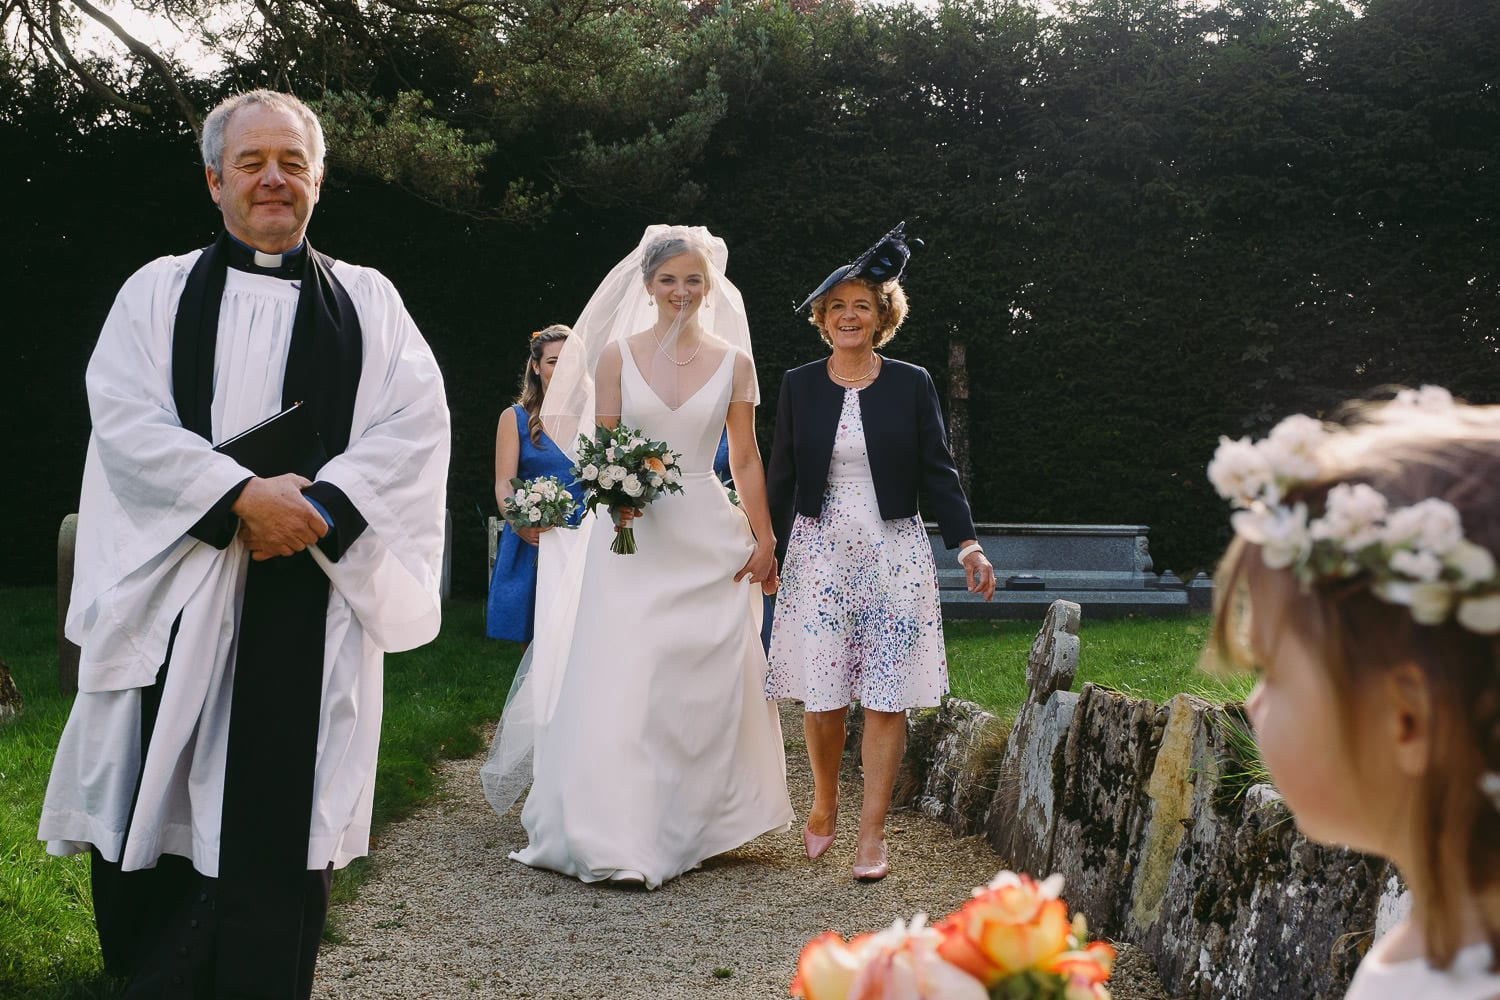 The bride arrives at the church